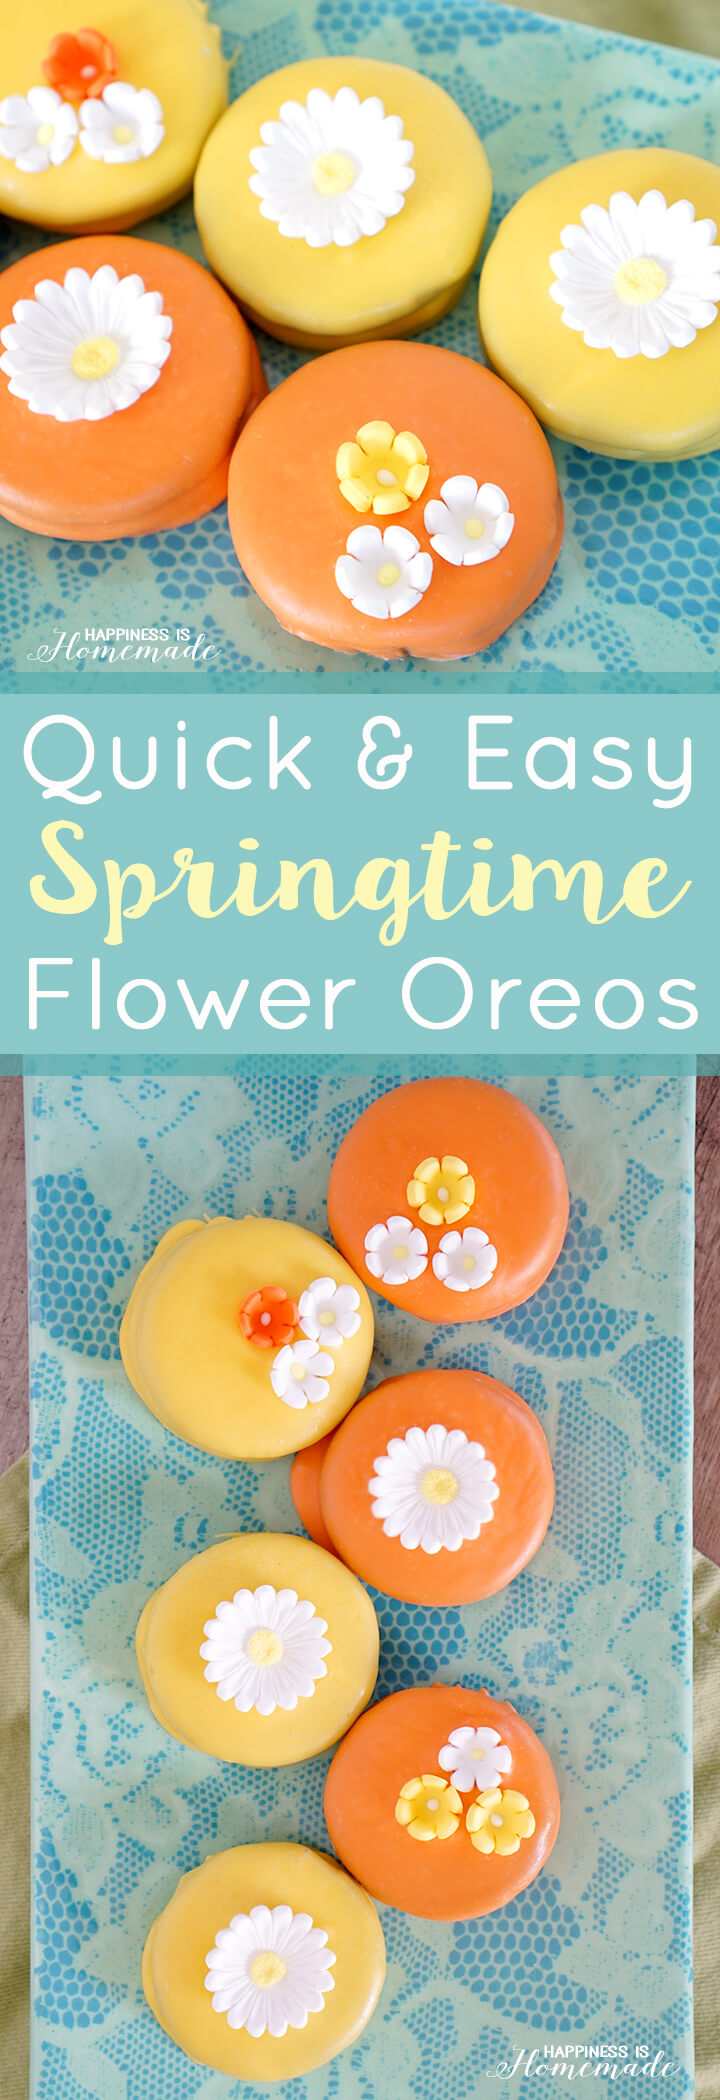 Quick and Easy Springtime Flower Oreos